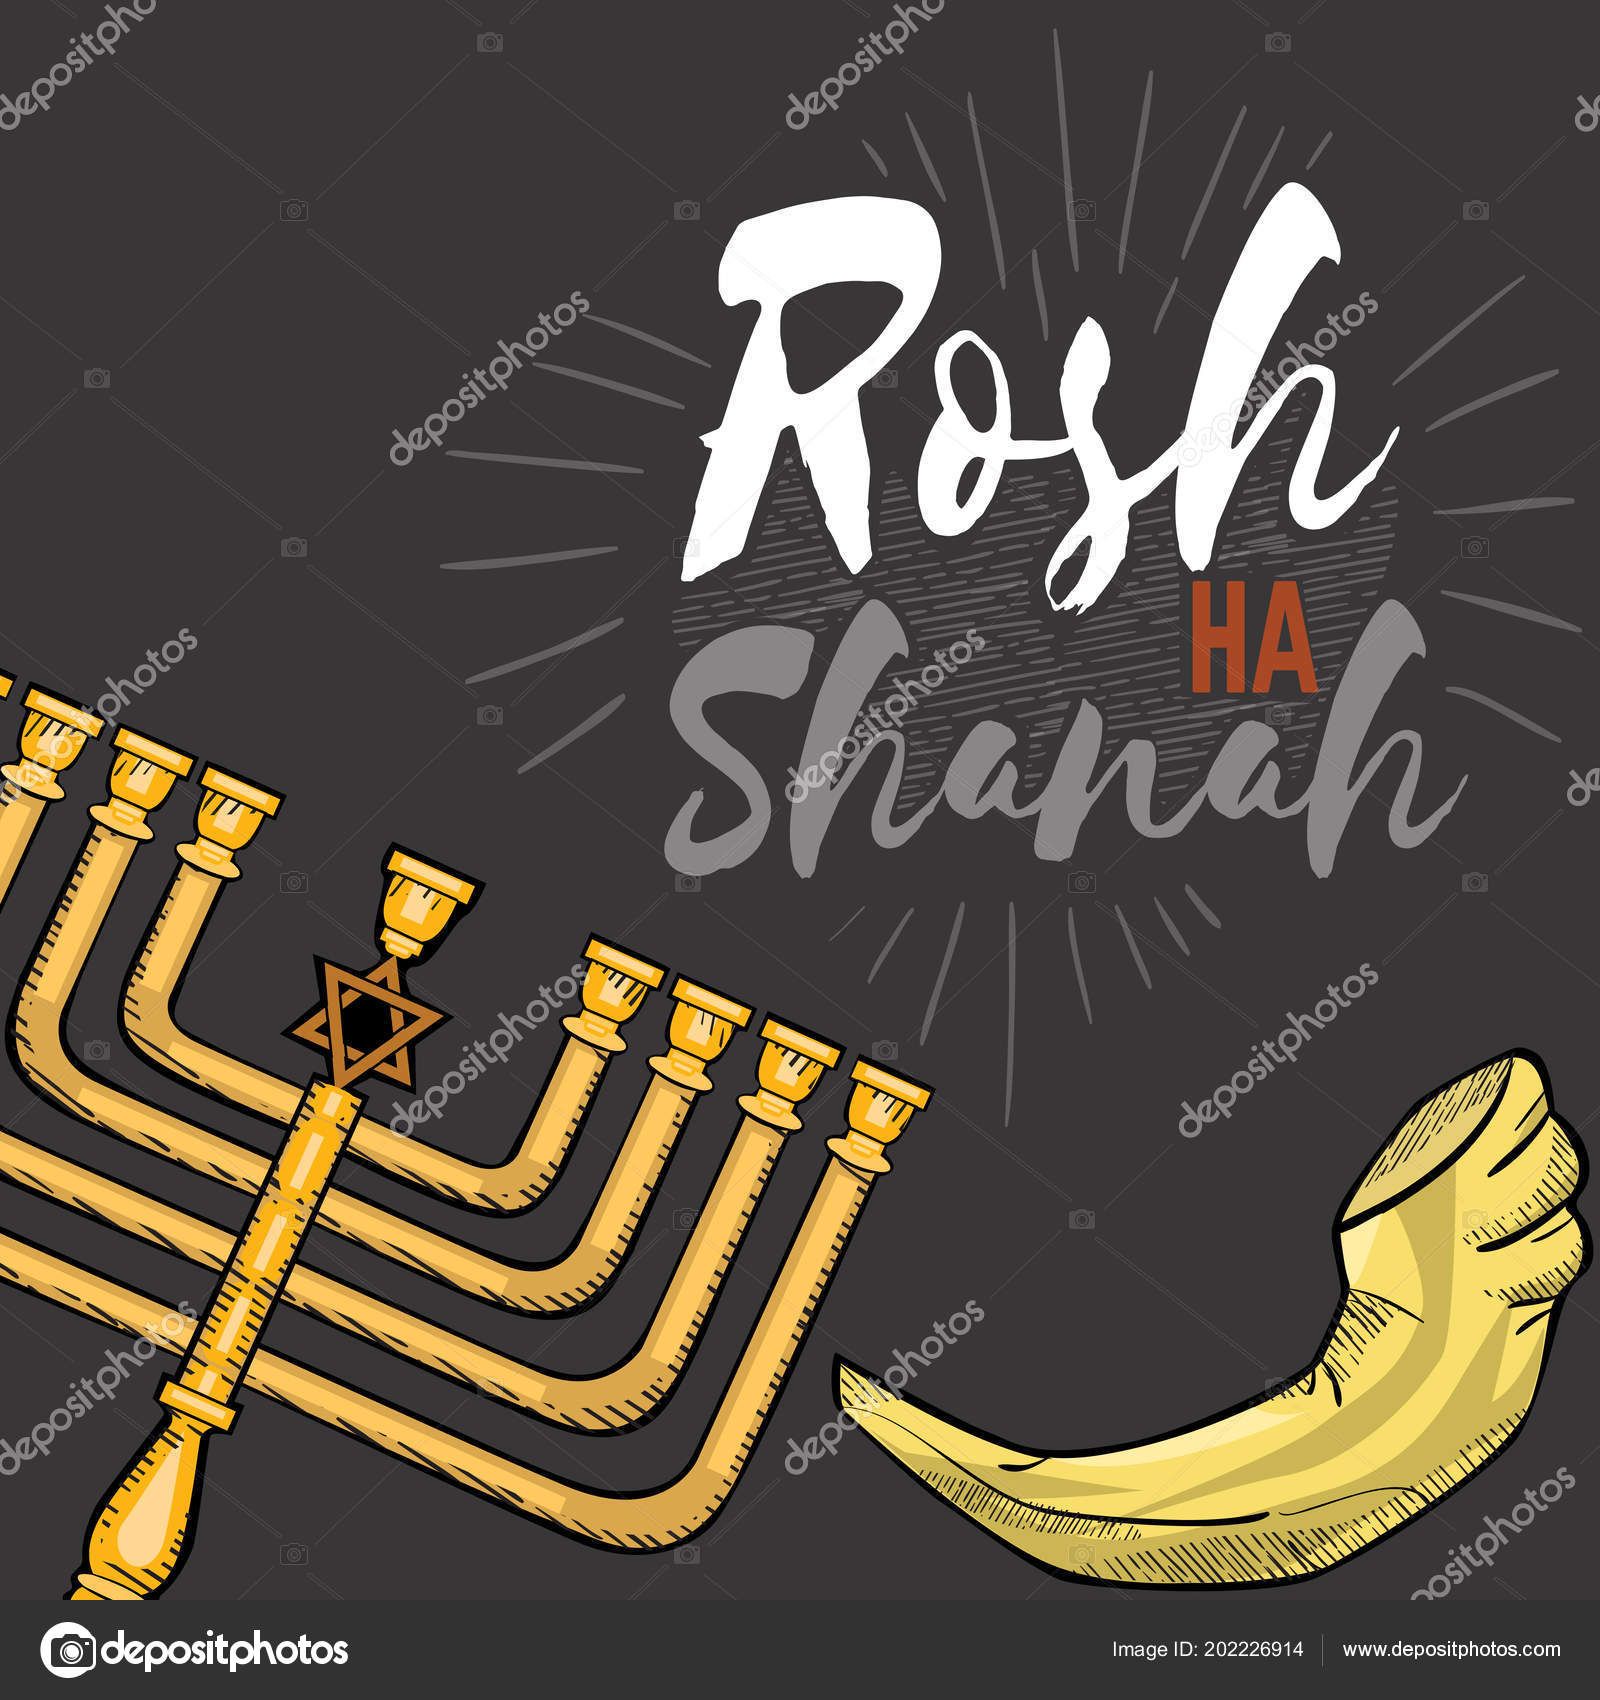 Rosh Hashanah Text Lettering Happy Jewish New Year Menorah Greeting Card Design With Logo Vector Illustration Cartoon Isolated On White Background Stock Vector C Anutaberg 202226914